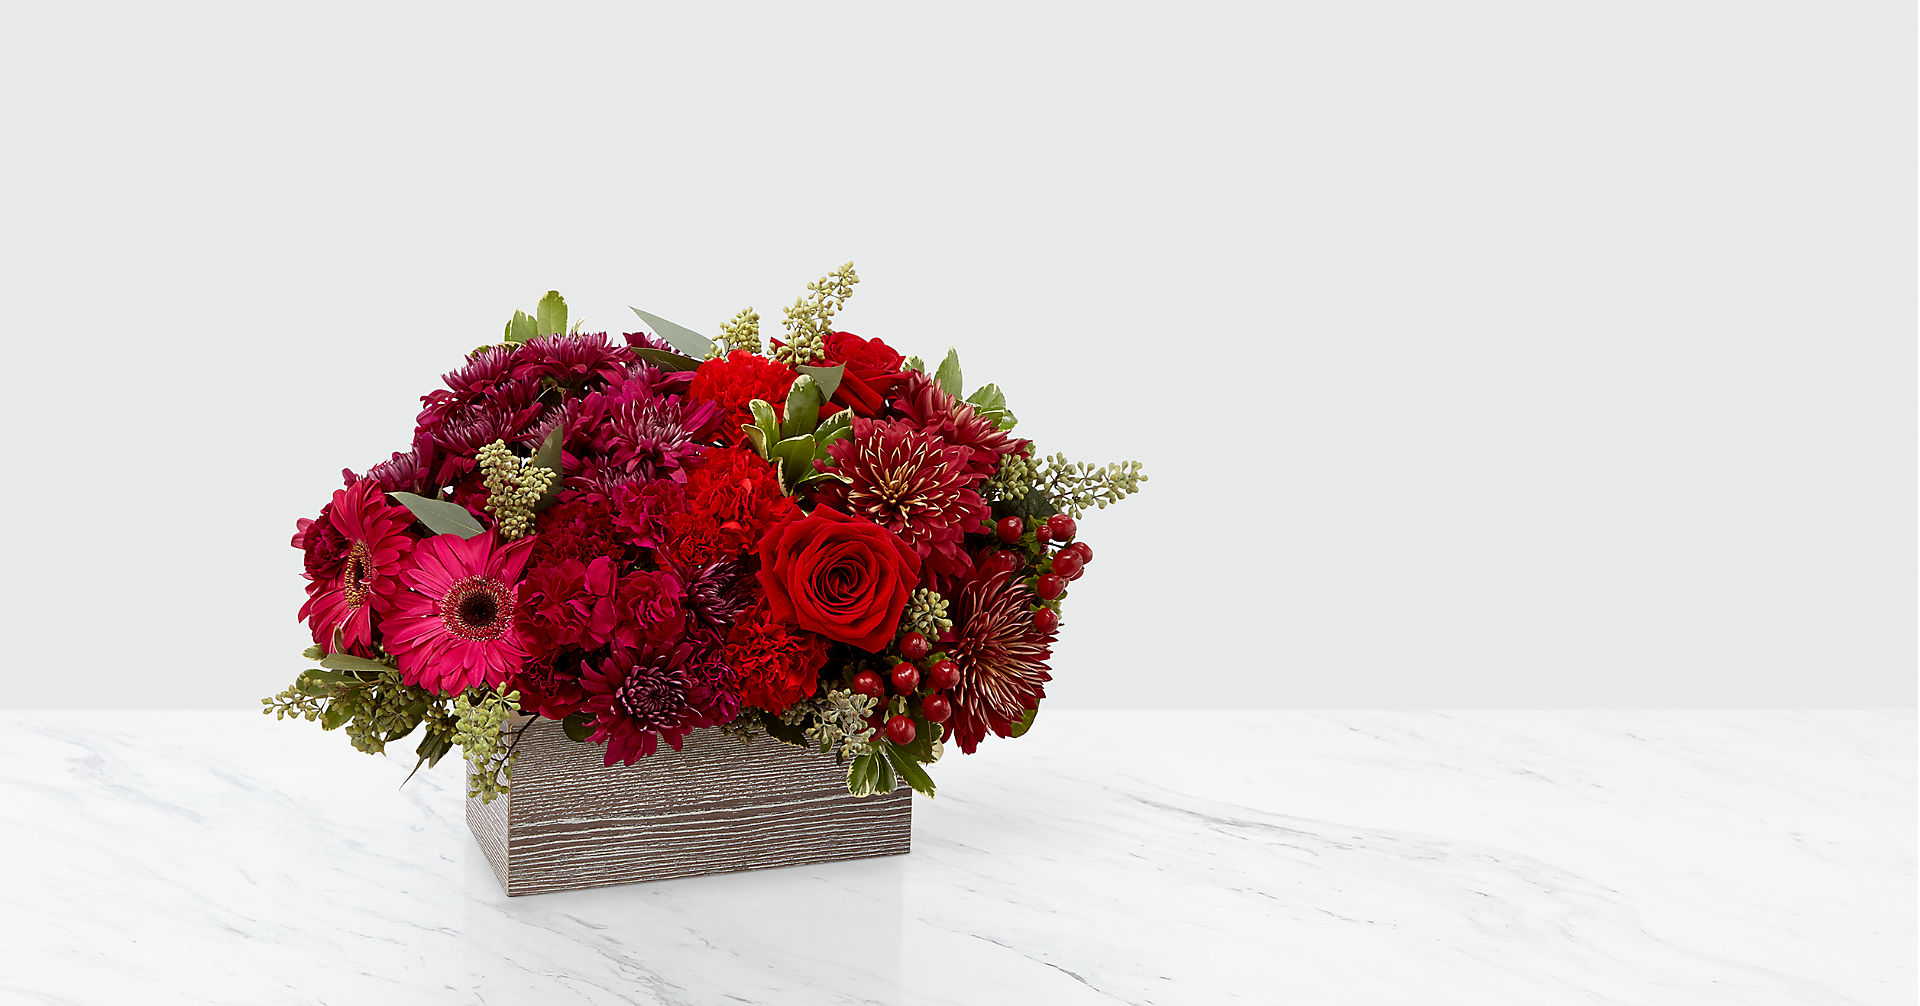 Rustic™ Bouquet - Premium - Image 1 Of 2